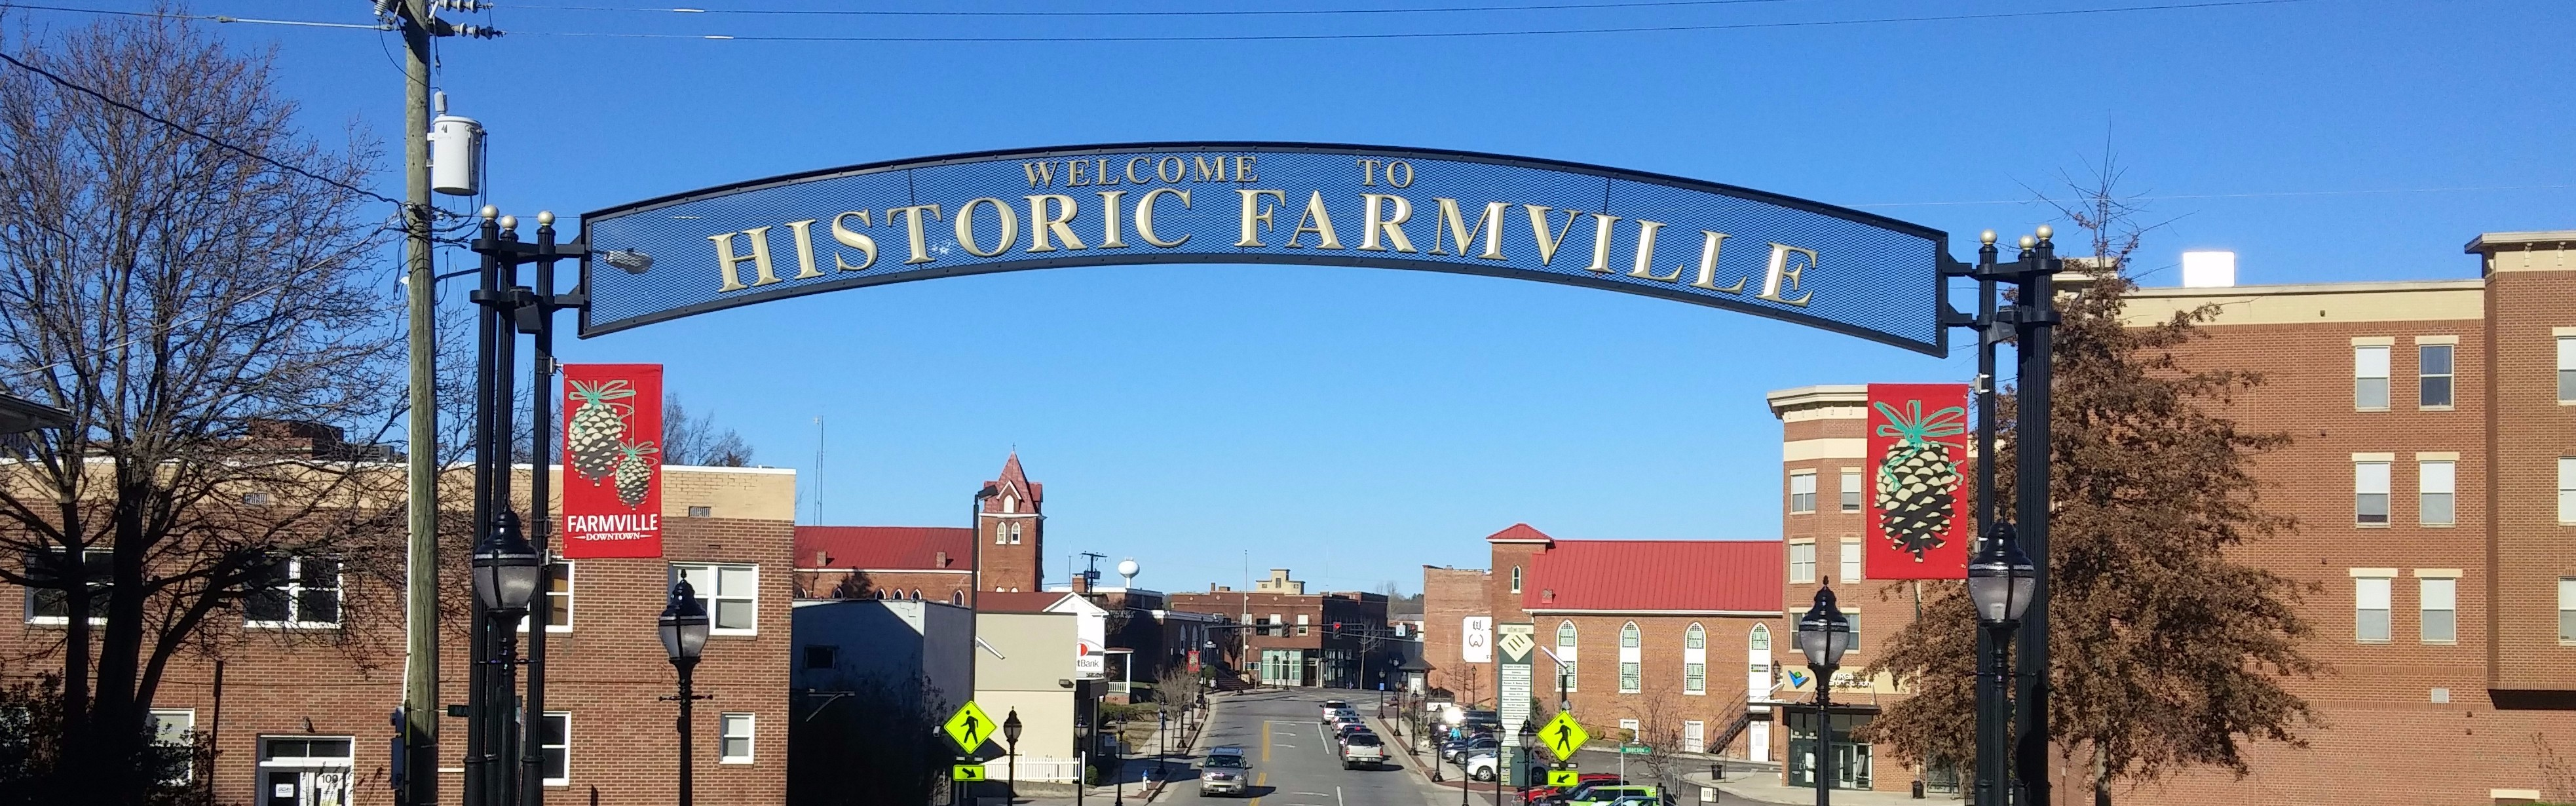 Welcome to Farmville sign